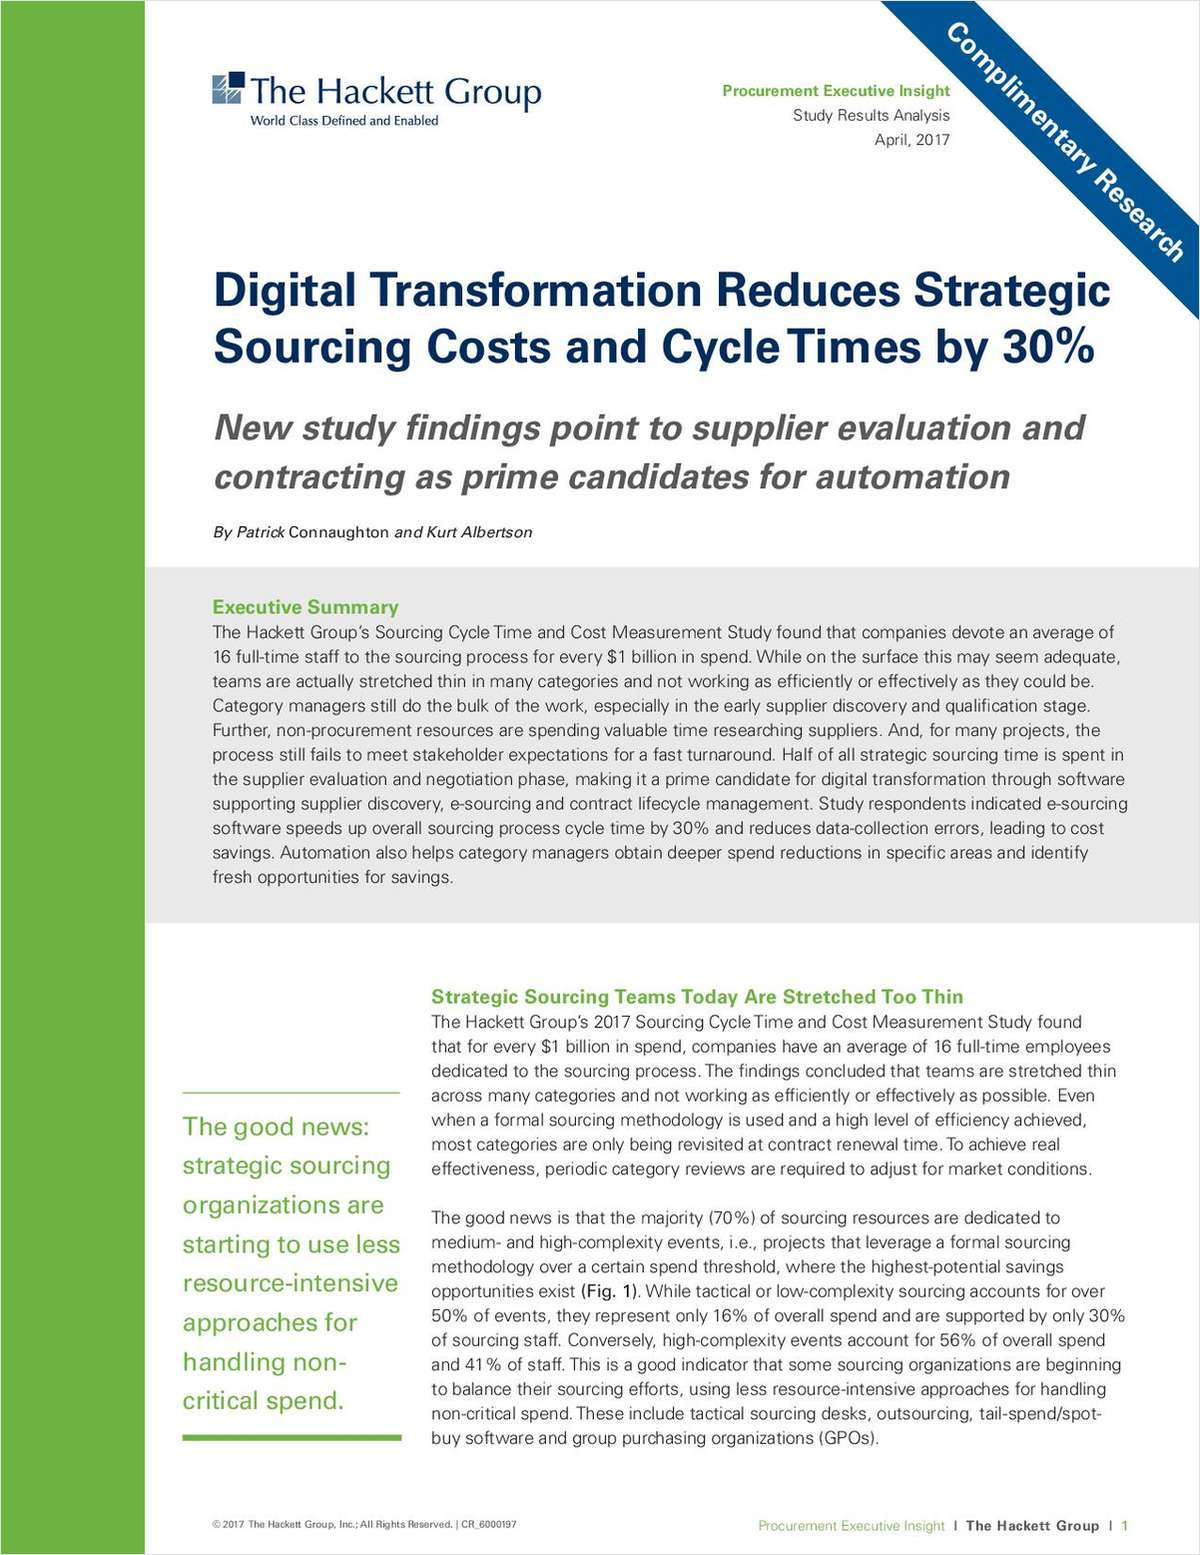 Digital Transformation Reduces Strategic Sourcing Costs and Cycle Time by 30%